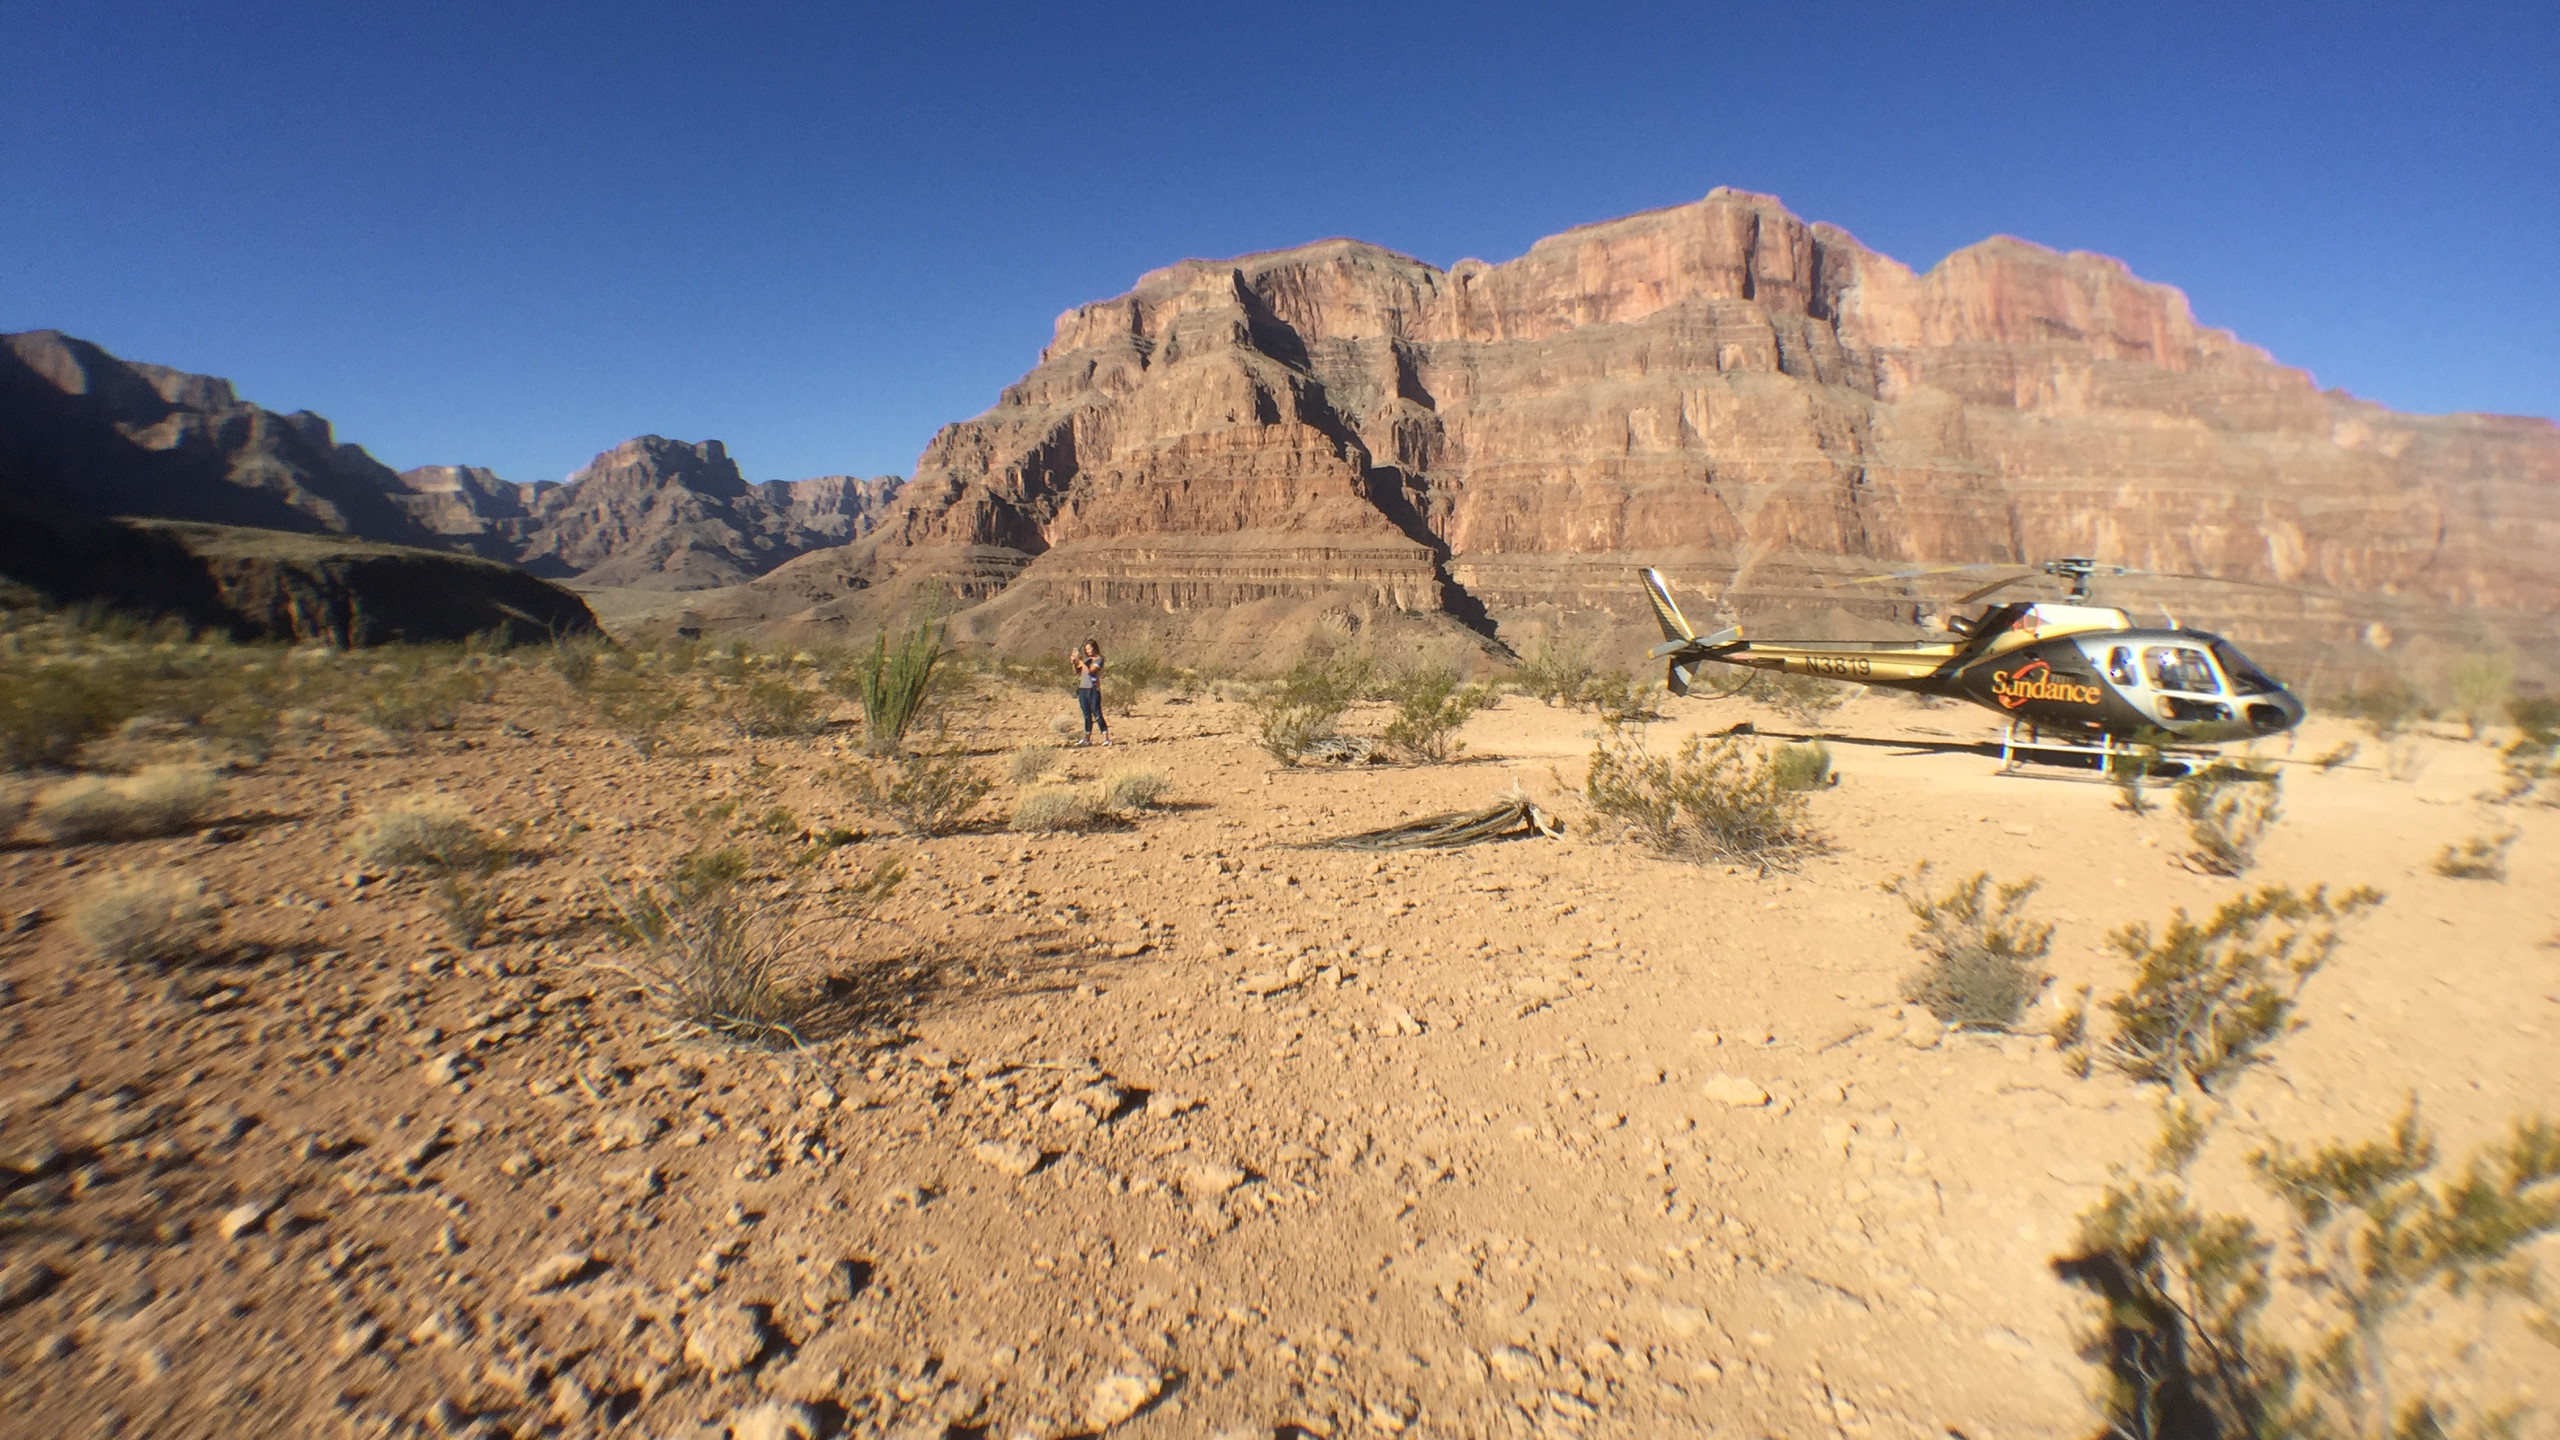 We landed in the Grand Canyon where we had breakfast, including champagne!